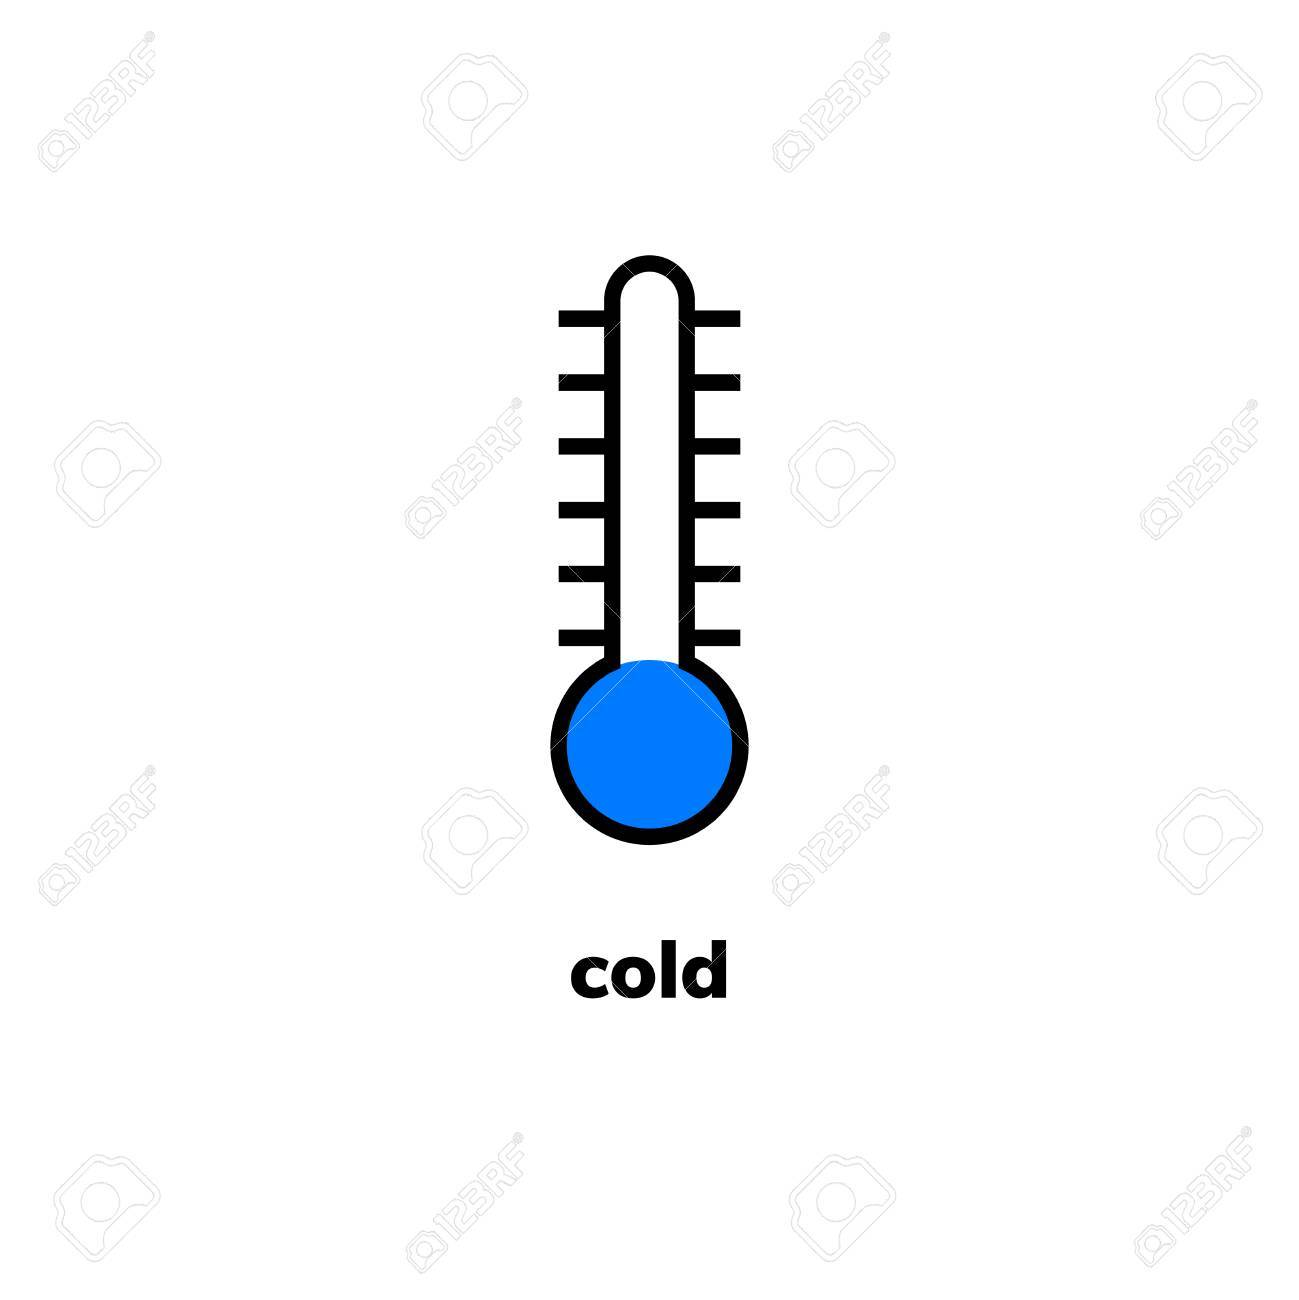 temperature icon vector clip art narrow range mercury thermometer rh 123rf com cold weather clipart black and white cold weather clipart images